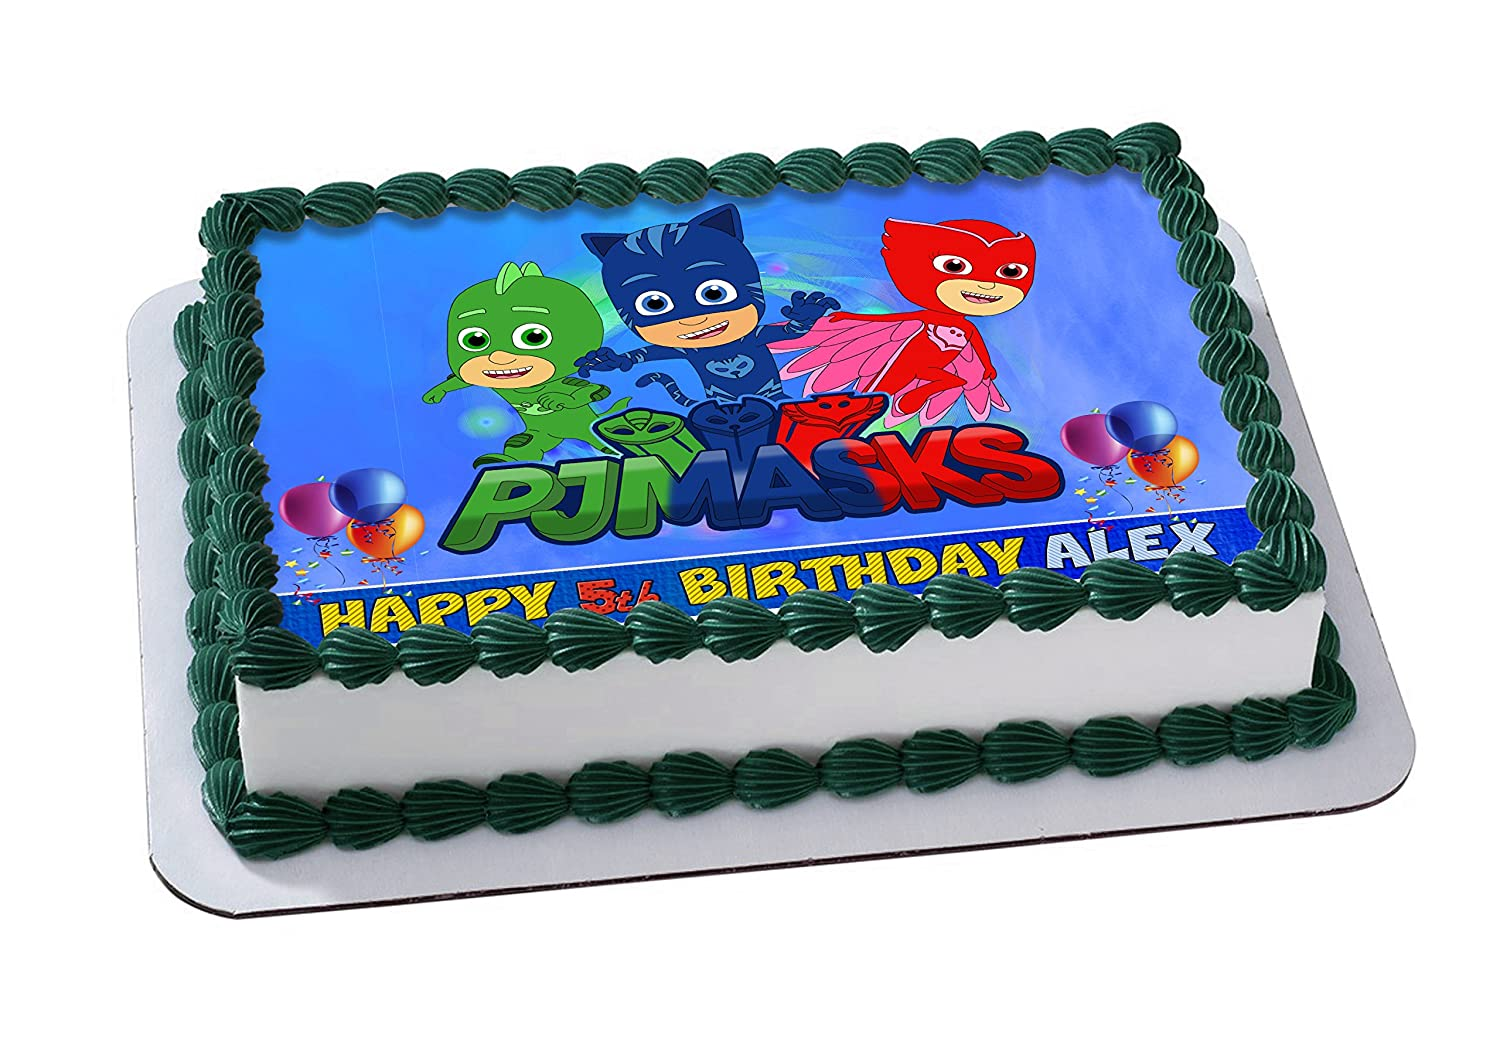 PJ Masks Disney Junior Birthday Cake Personalized Cake Toppers Icing Sugar Paper A4 Sheet Edible Frosting Photo 1/4: Amazon.com: Grocery & Gourmet Food